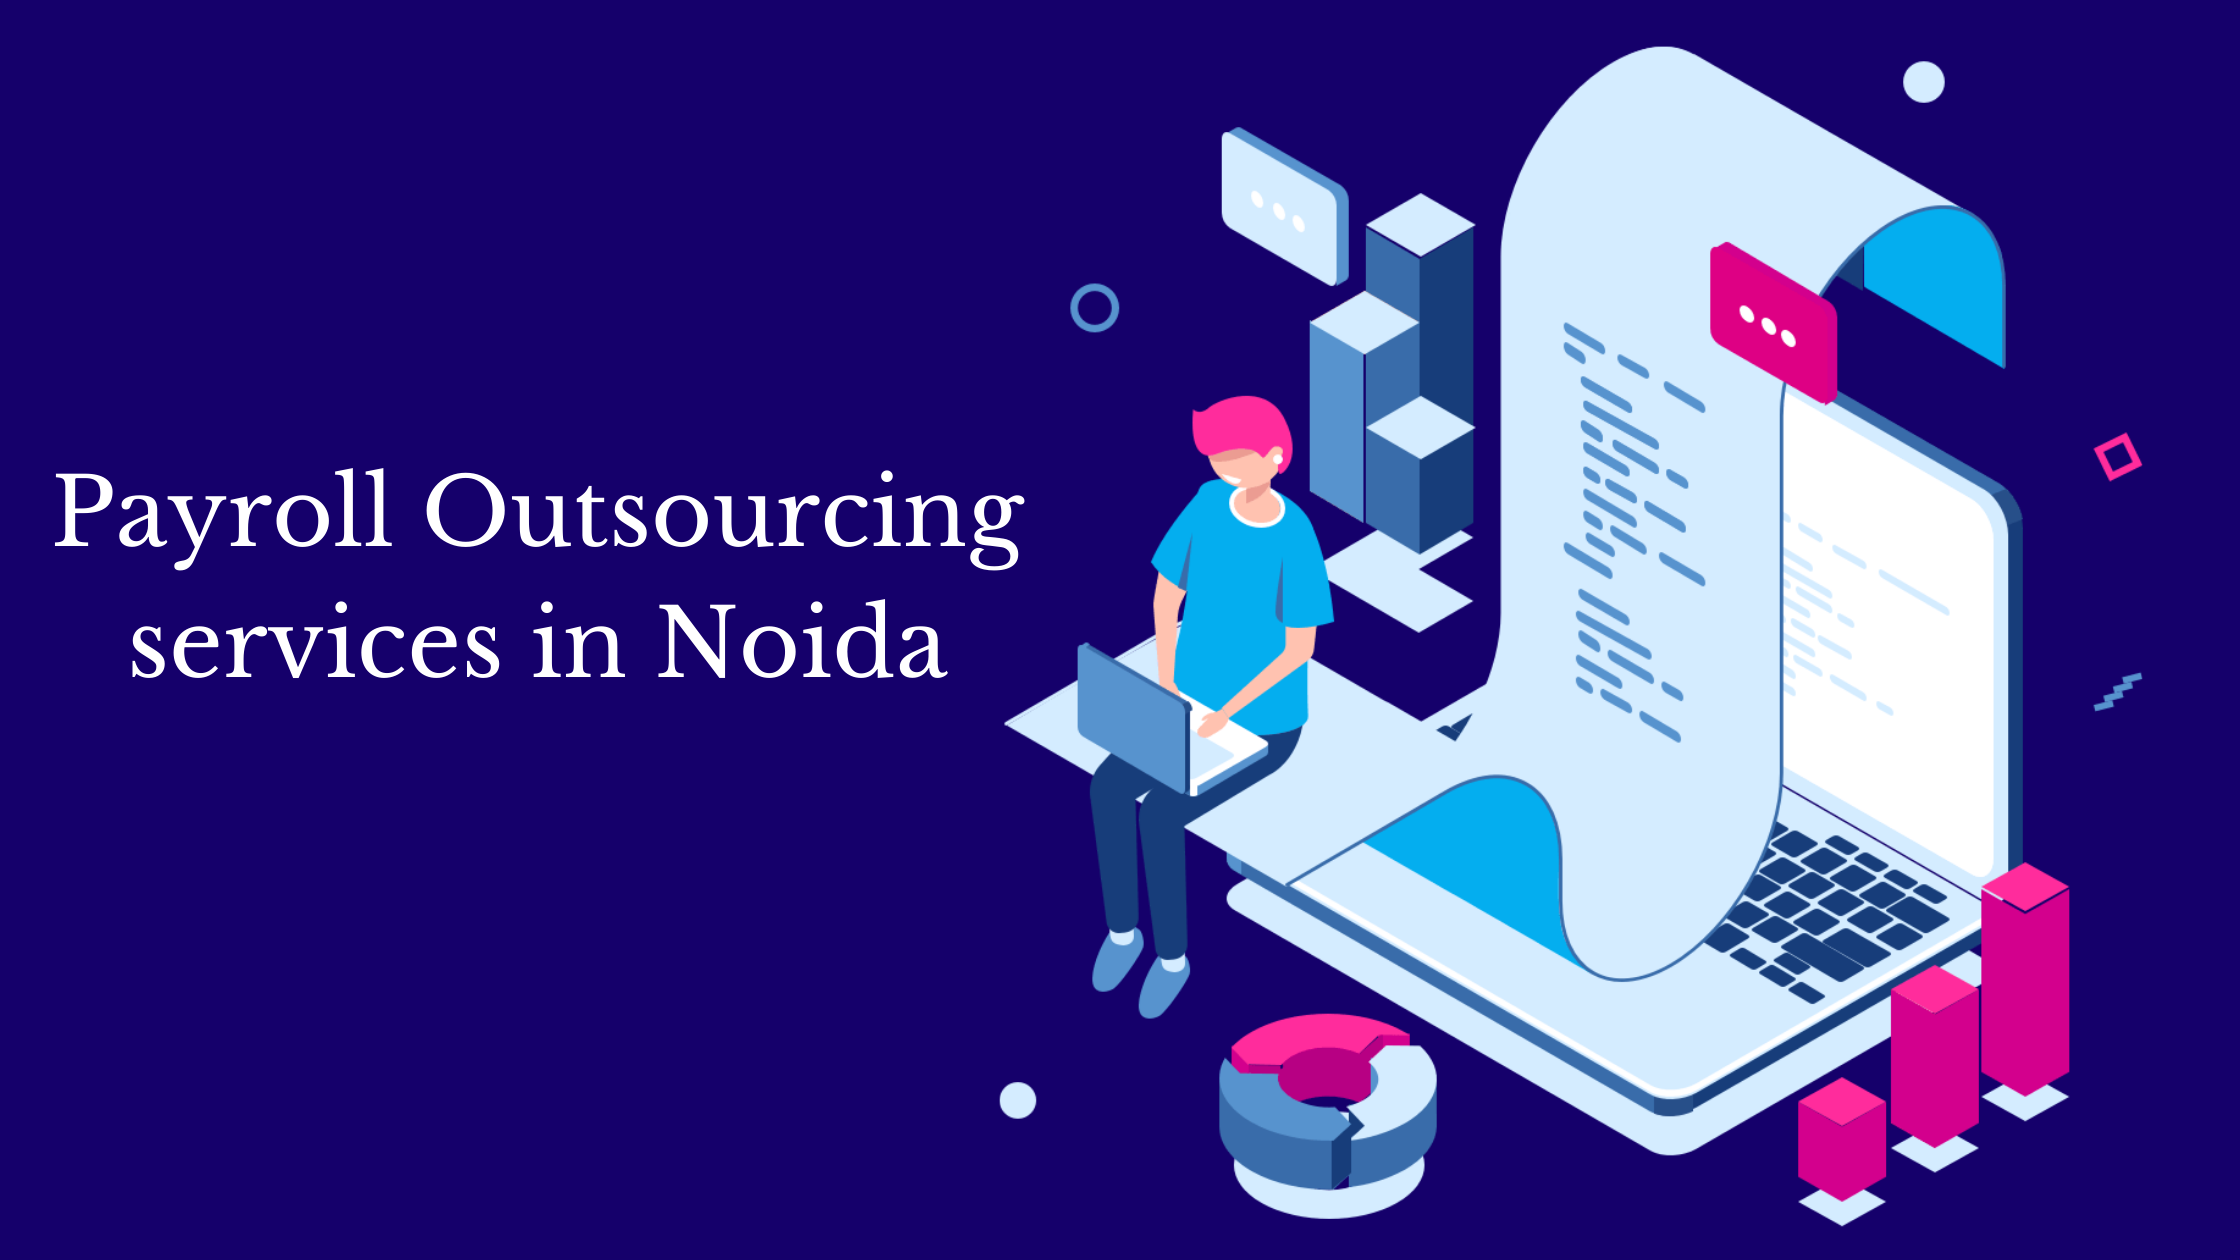 Payroll outsourcing services in Noida- Low cost with quality services